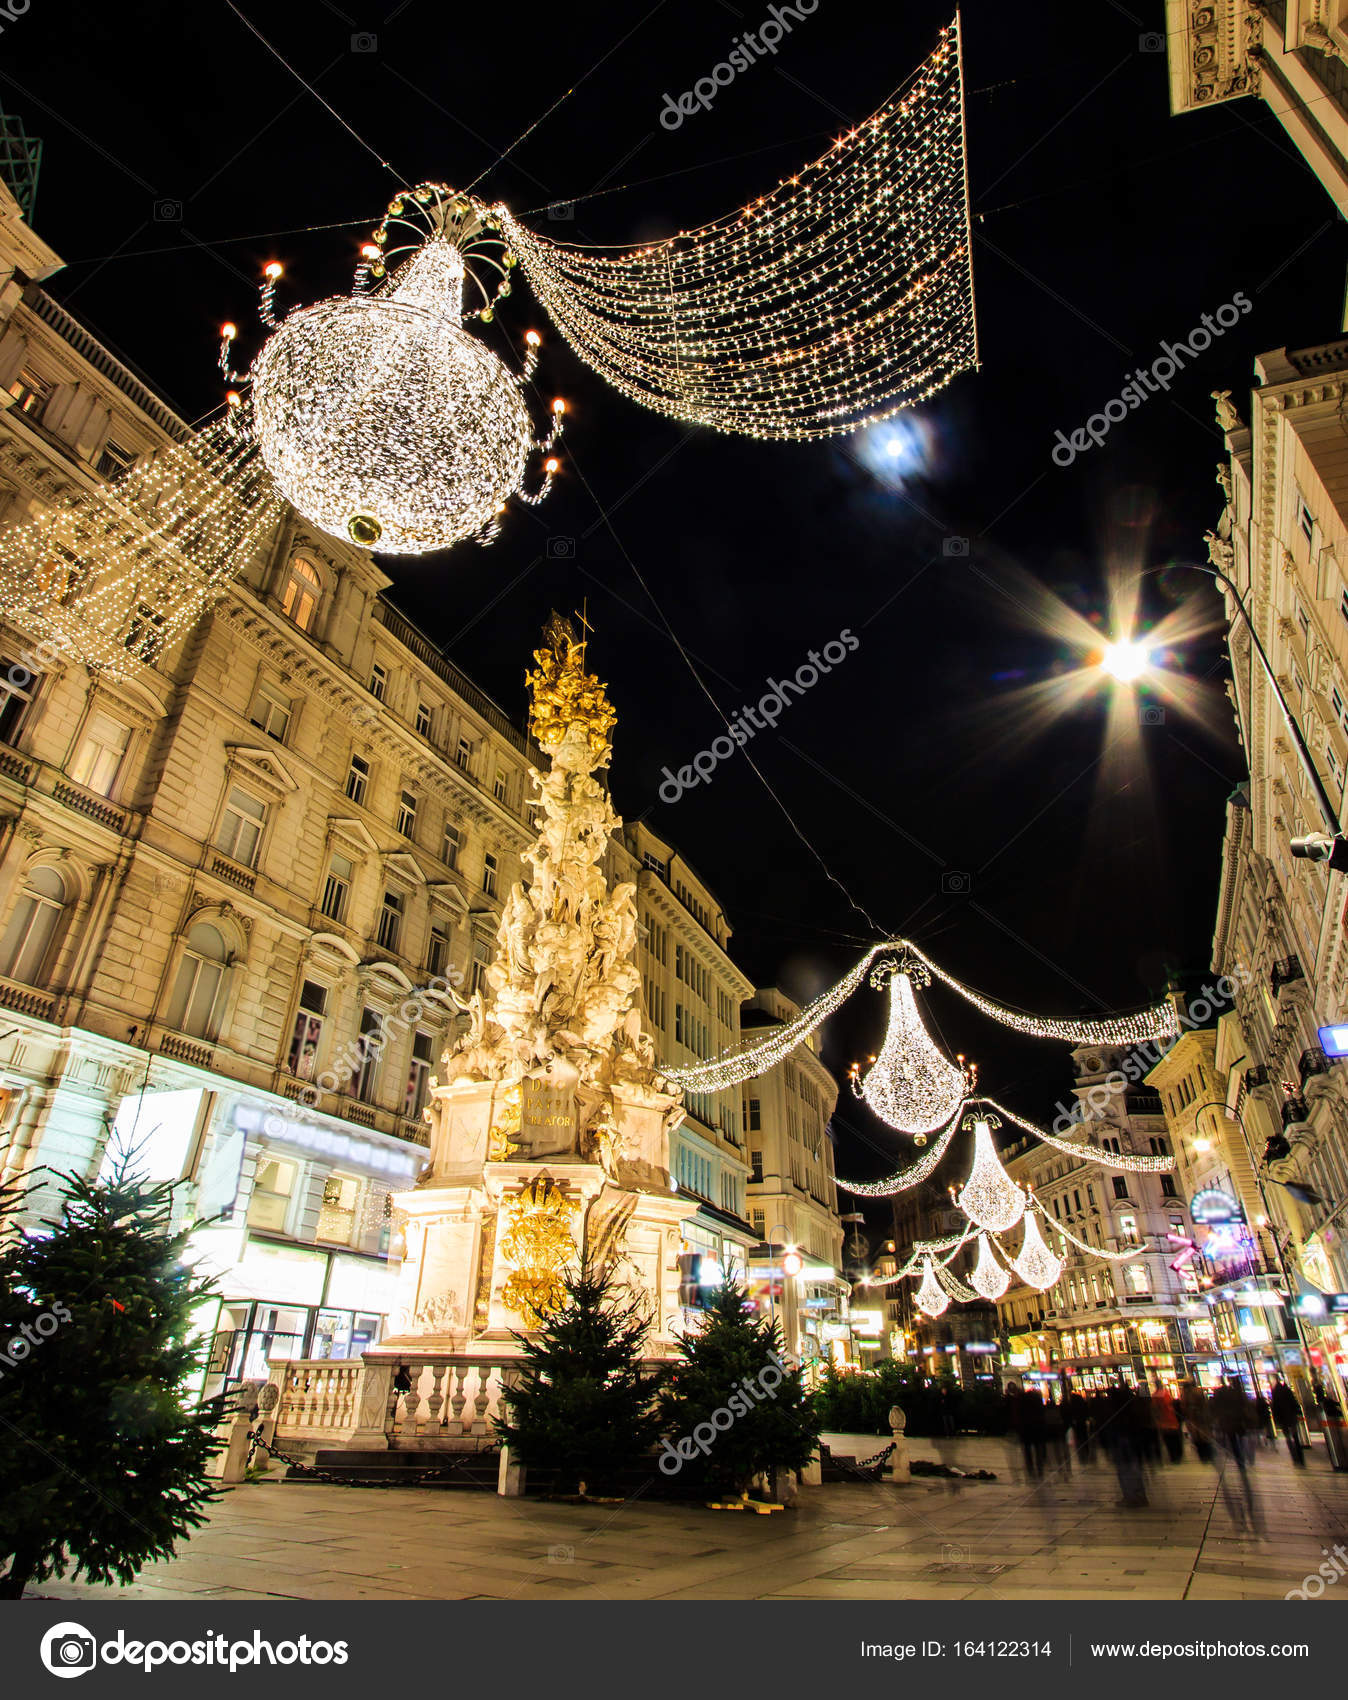 Night Atmospheric View, Motion Blurred Of Graben, Busy Crowded Viennau0027s  Shopping Street With Memorial